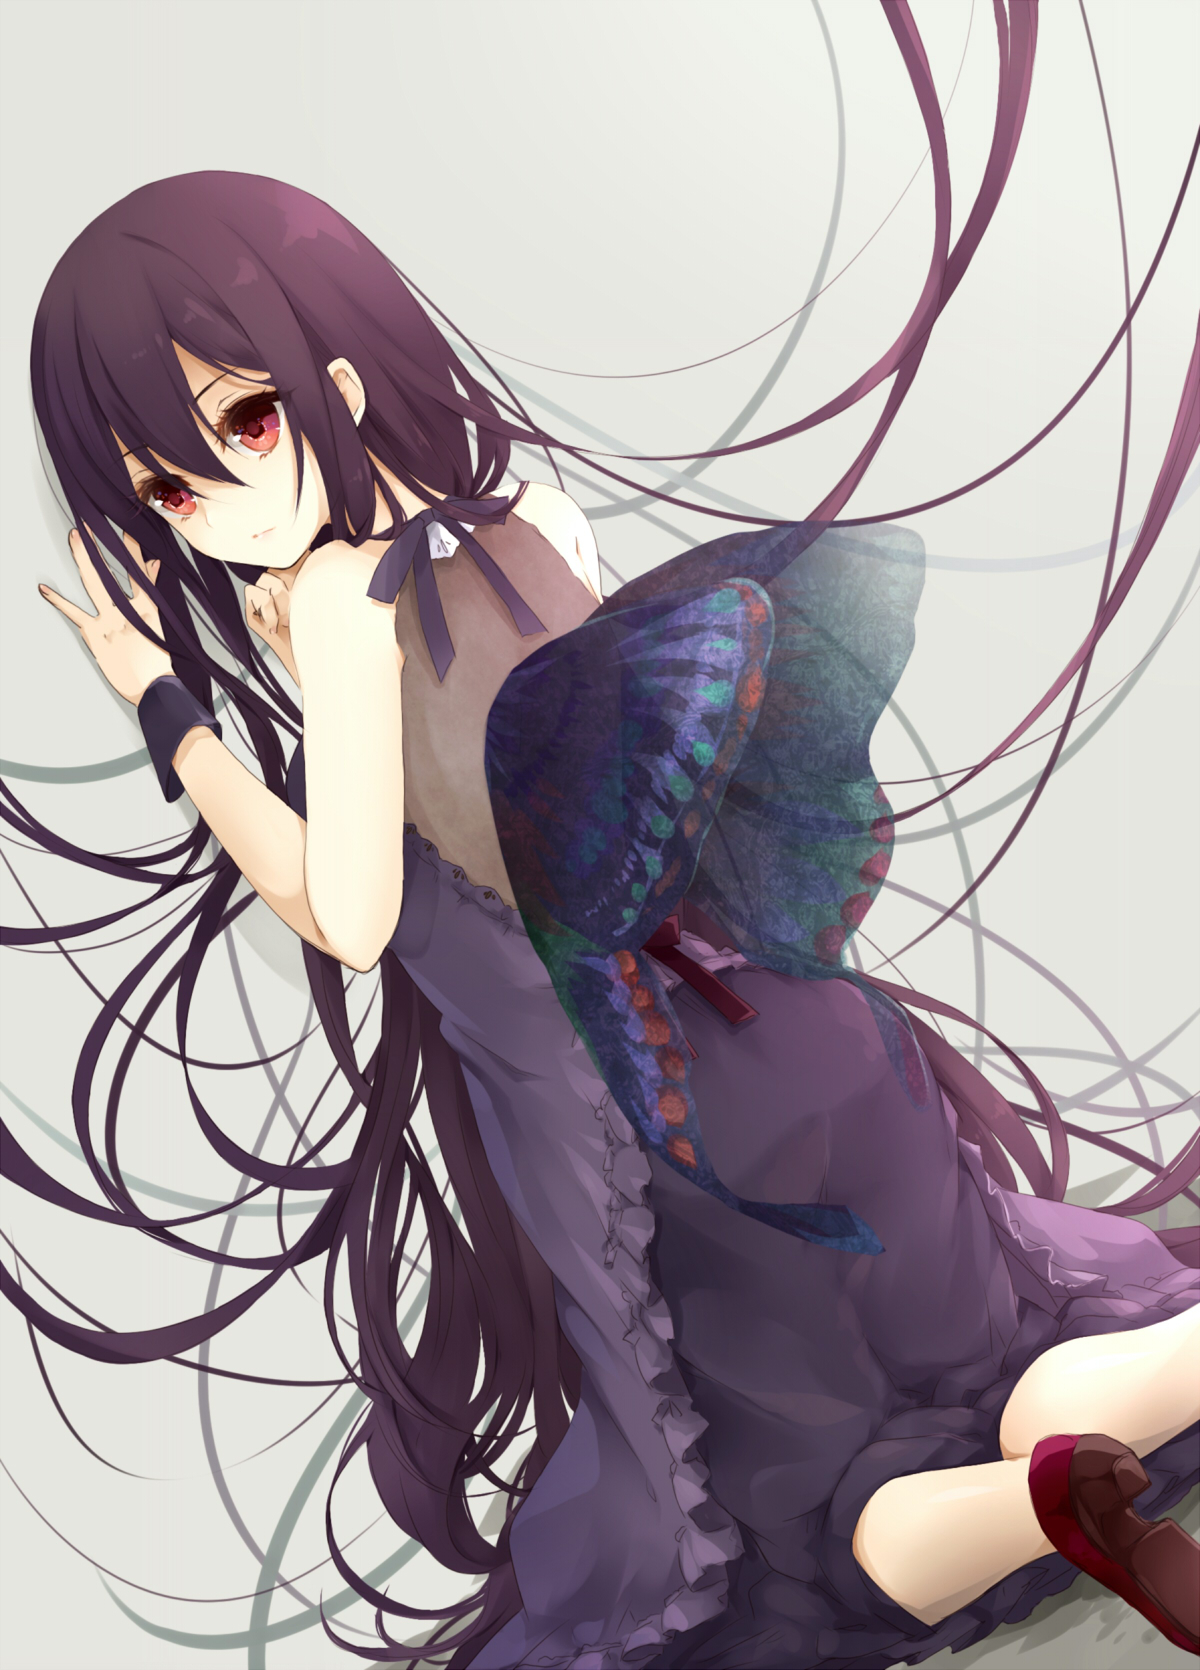 Anime, CG, Pictures, dress, high, heels, long, hair, purple, eyes, wings, картинка, аниме, picture, картинки,  , разные, красивые